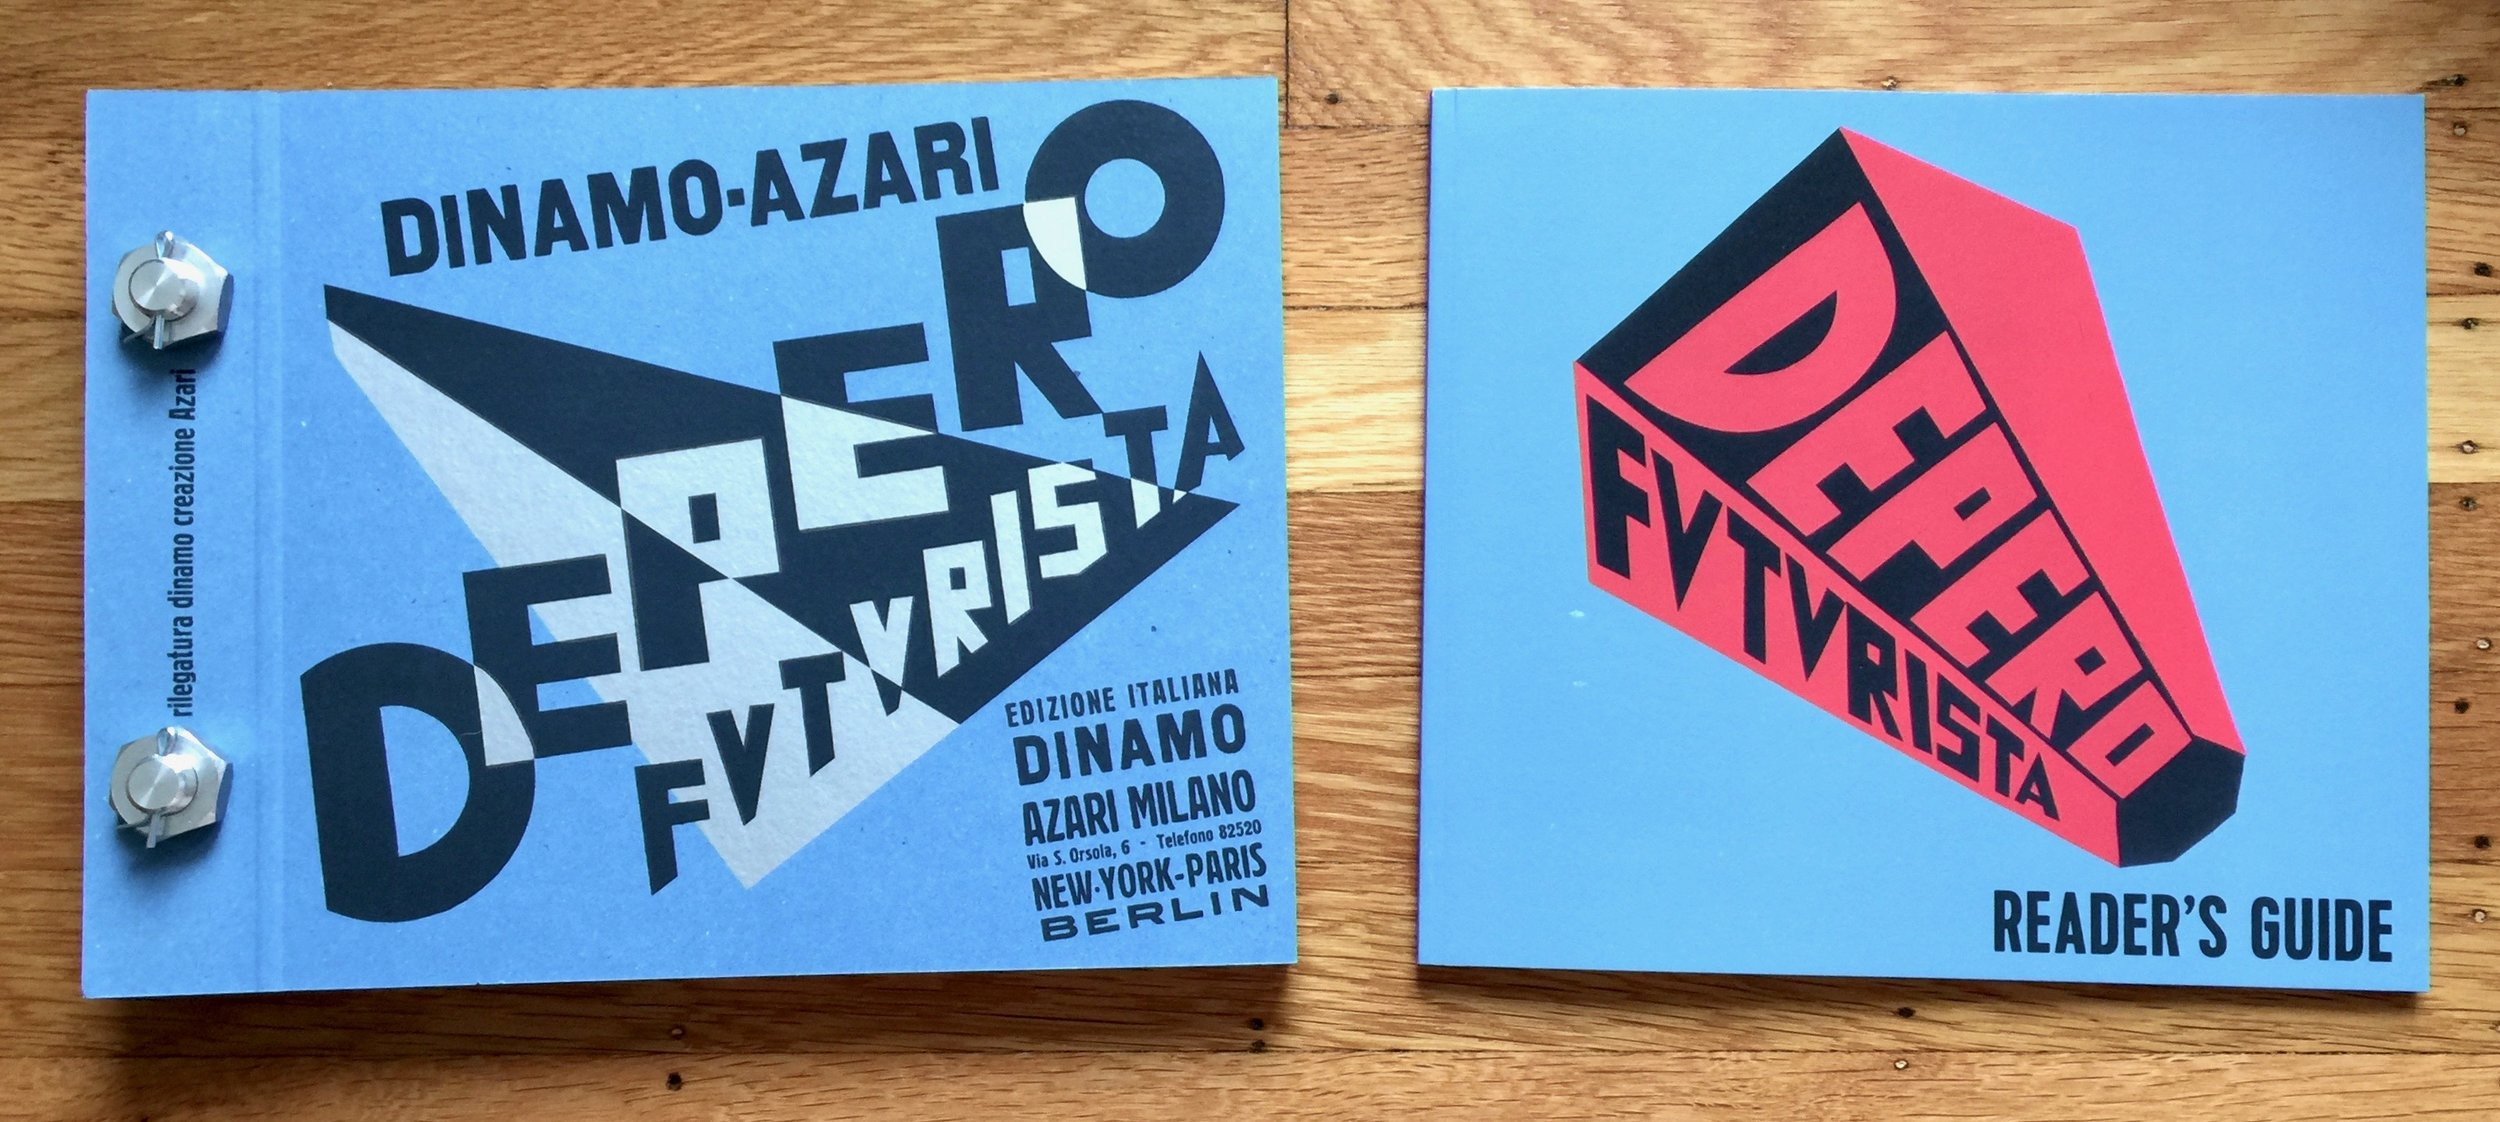 Depero Bolted Book facsimile and the Reader's Guide by Designers and Books